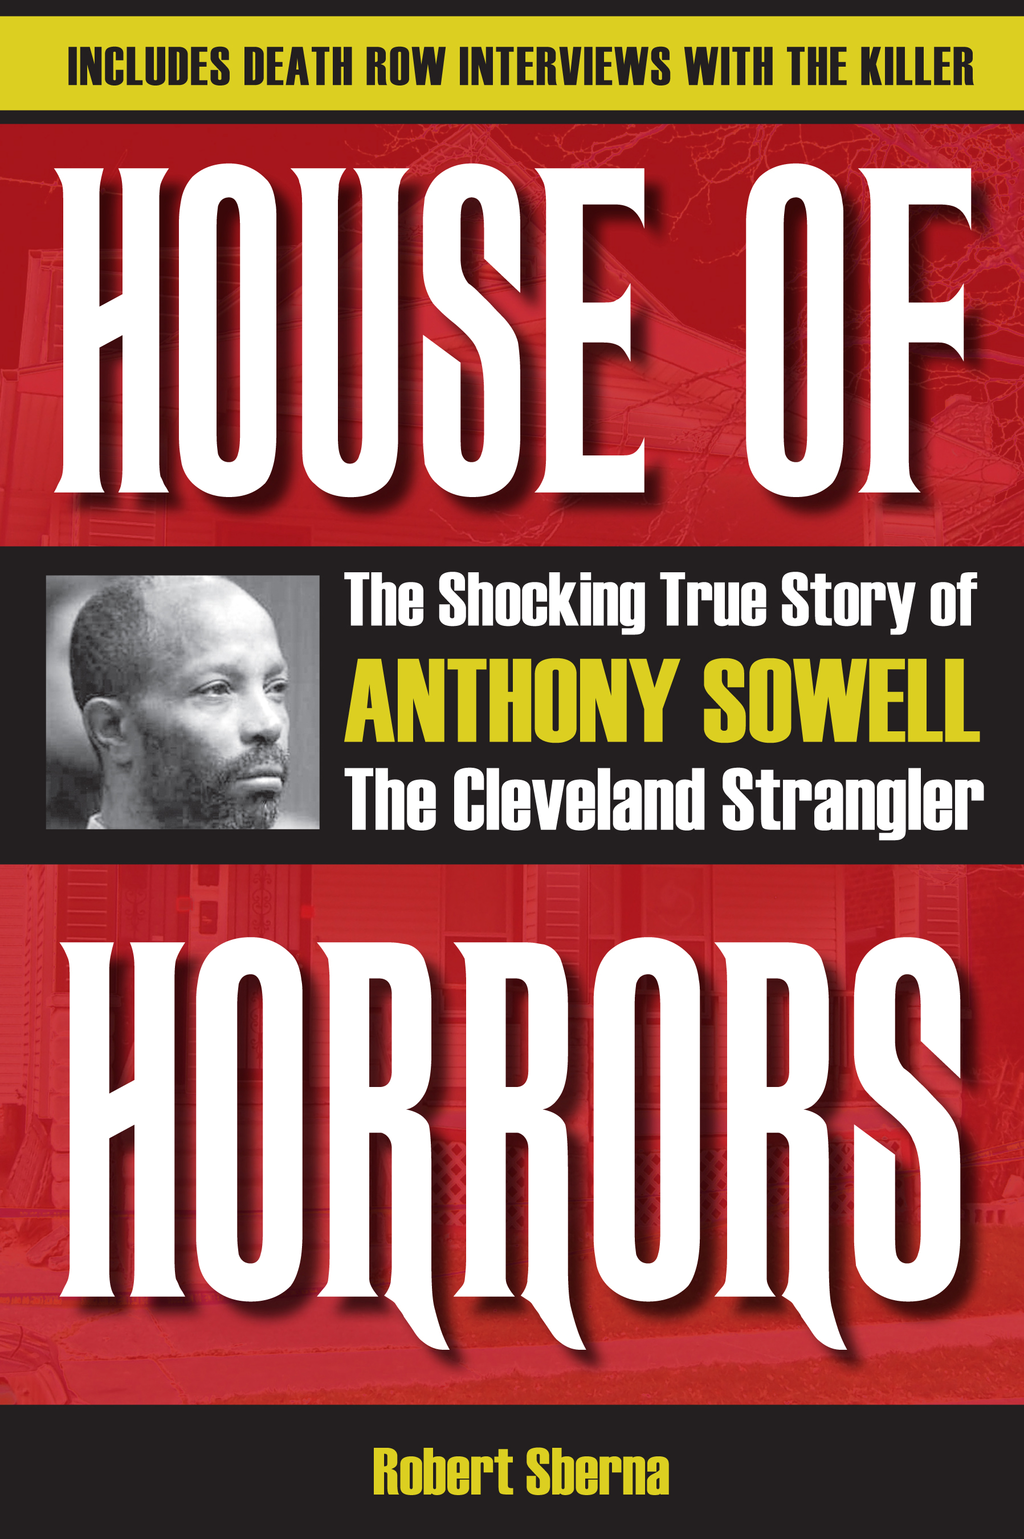 House of Horrors: The Shocking True Story of Anthony Sowell, the Cleveland Strangler By: Robert Sberna